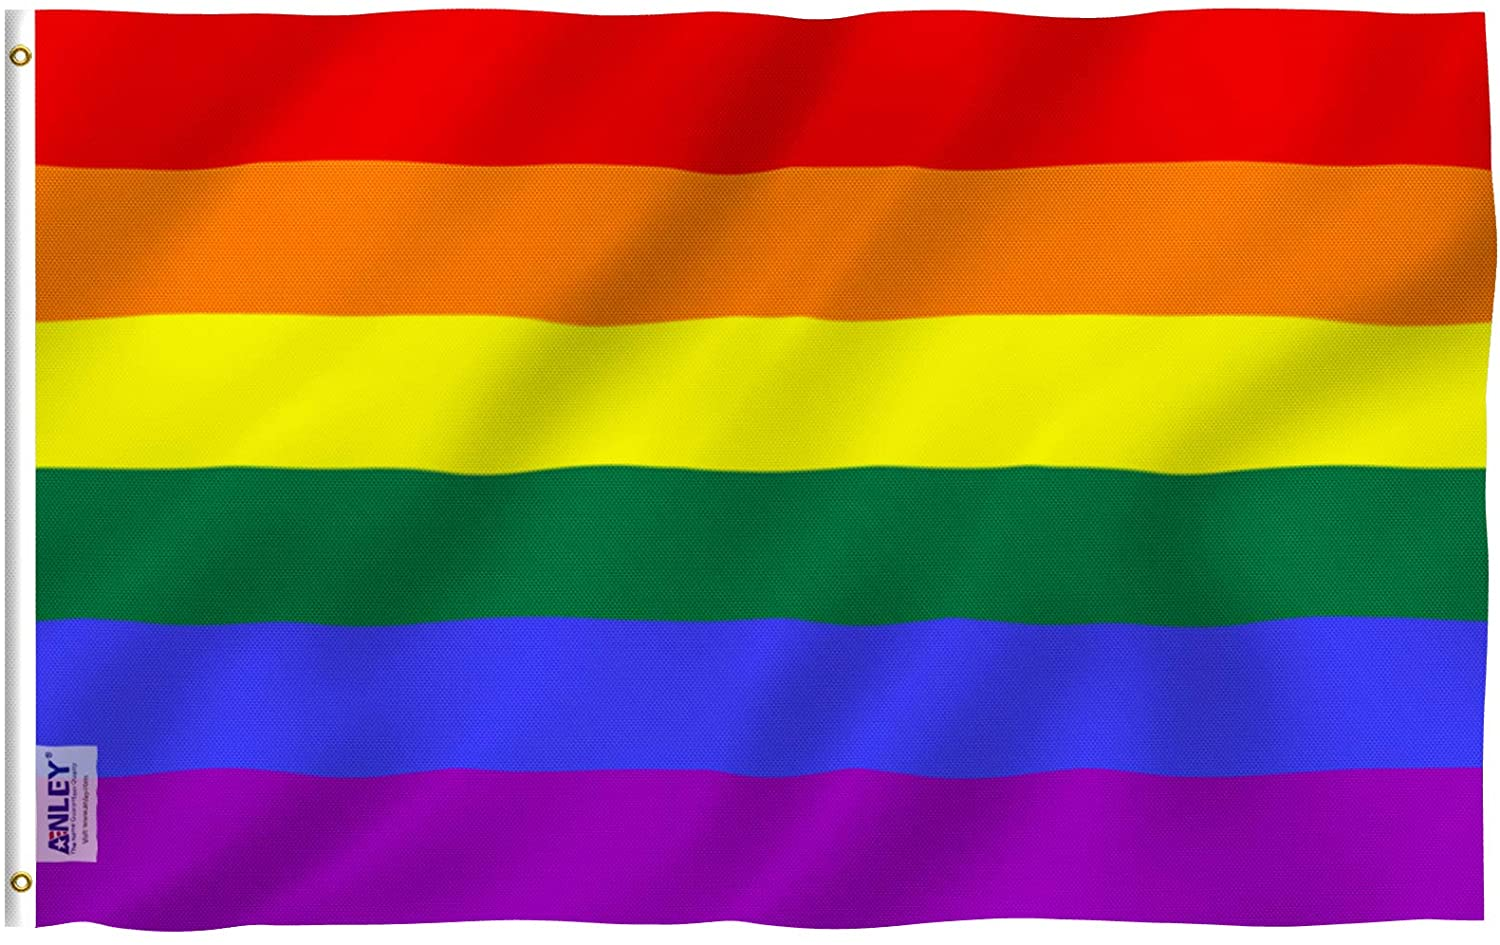 Amazon Com Anley Fly Breeze 3x5 Foot Rainbow Flag 6 Stripes Vivid Color And Fade Proof Canvas Header And Double Stitched Gay Pride Banner Flags Polyester With Brass Grommets